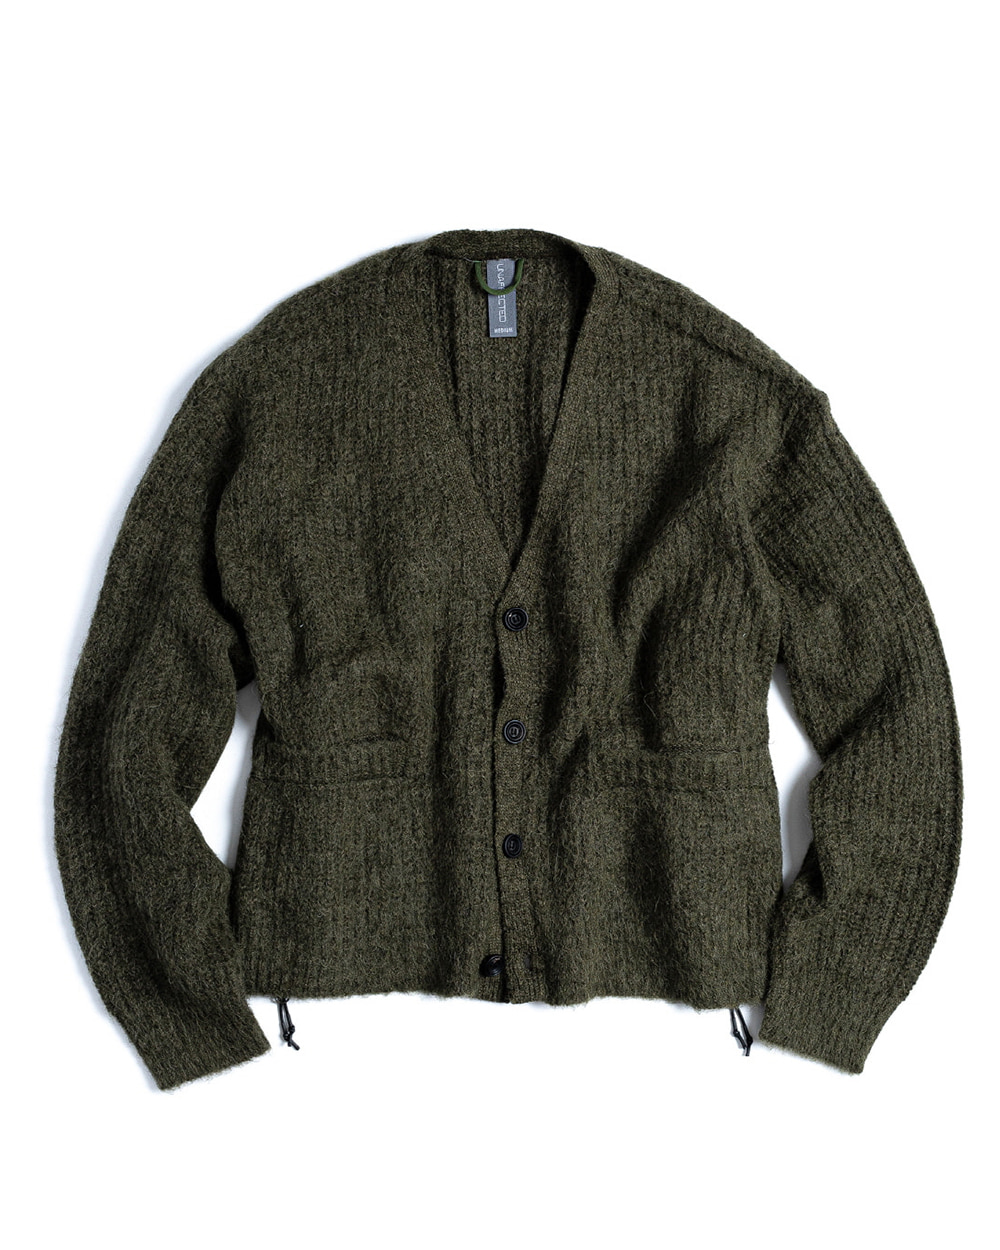 언어펙티드 OVERSIZED FLUFFY CARDIGAN (D.Sage Green)